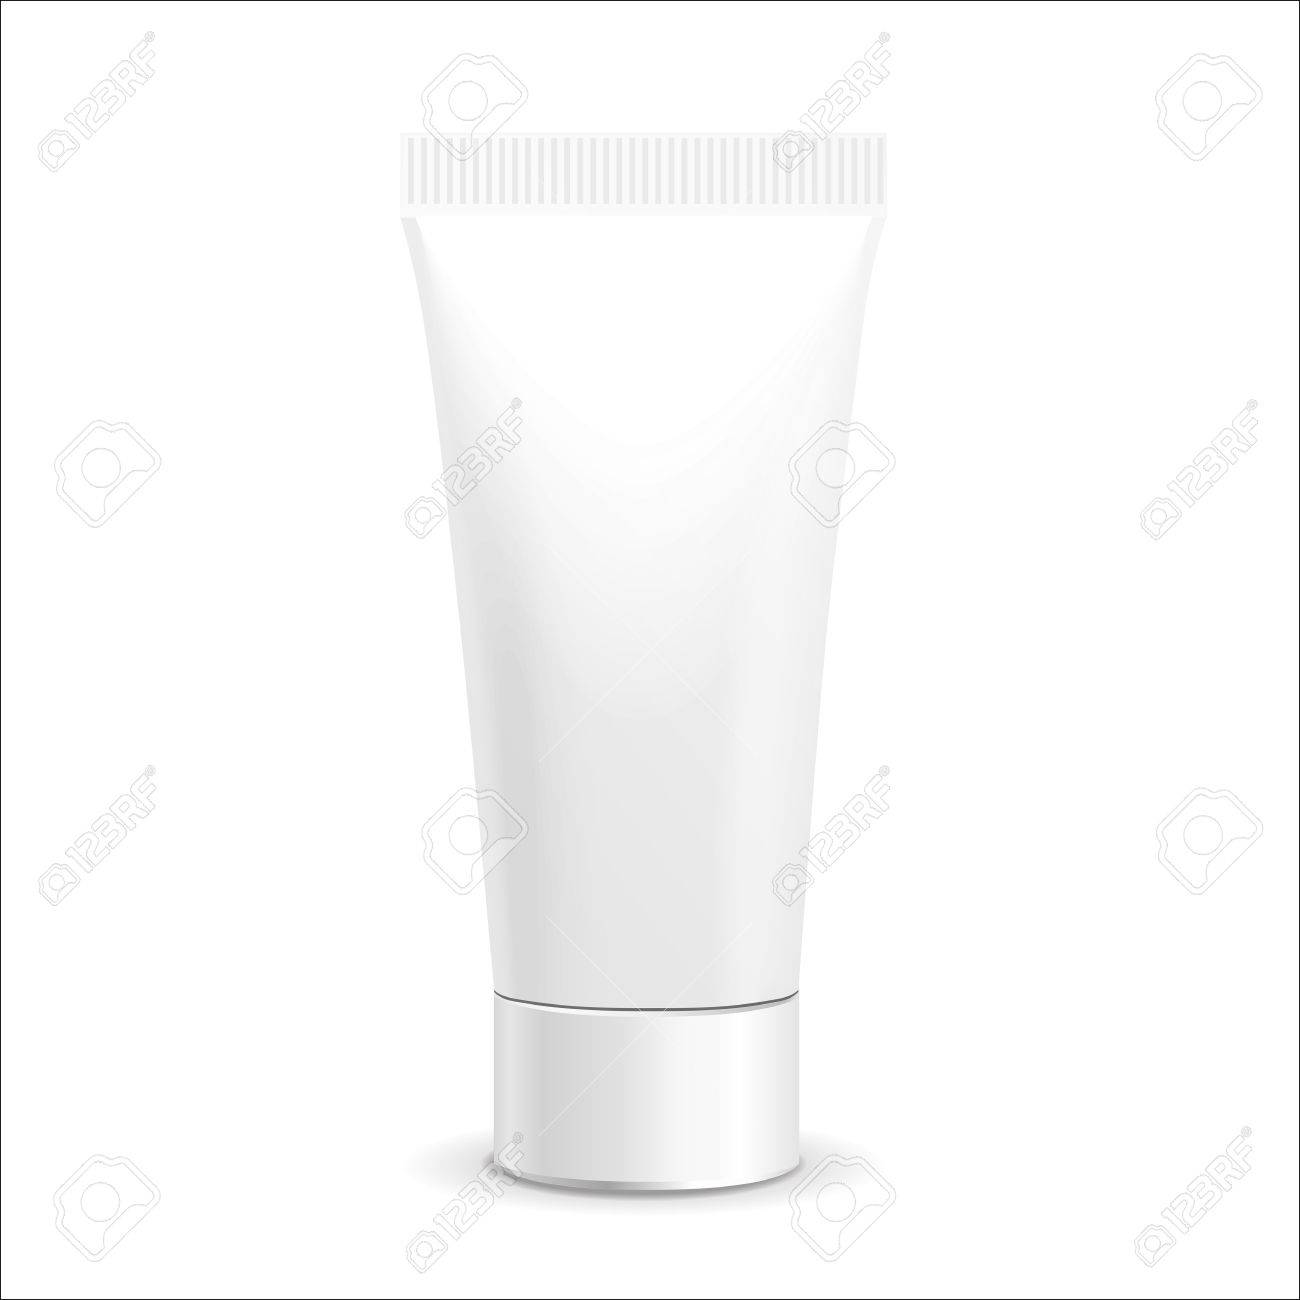 Make up. Tube of cream or gel white plastic product. Container, product and packaging. White background. - 46972884